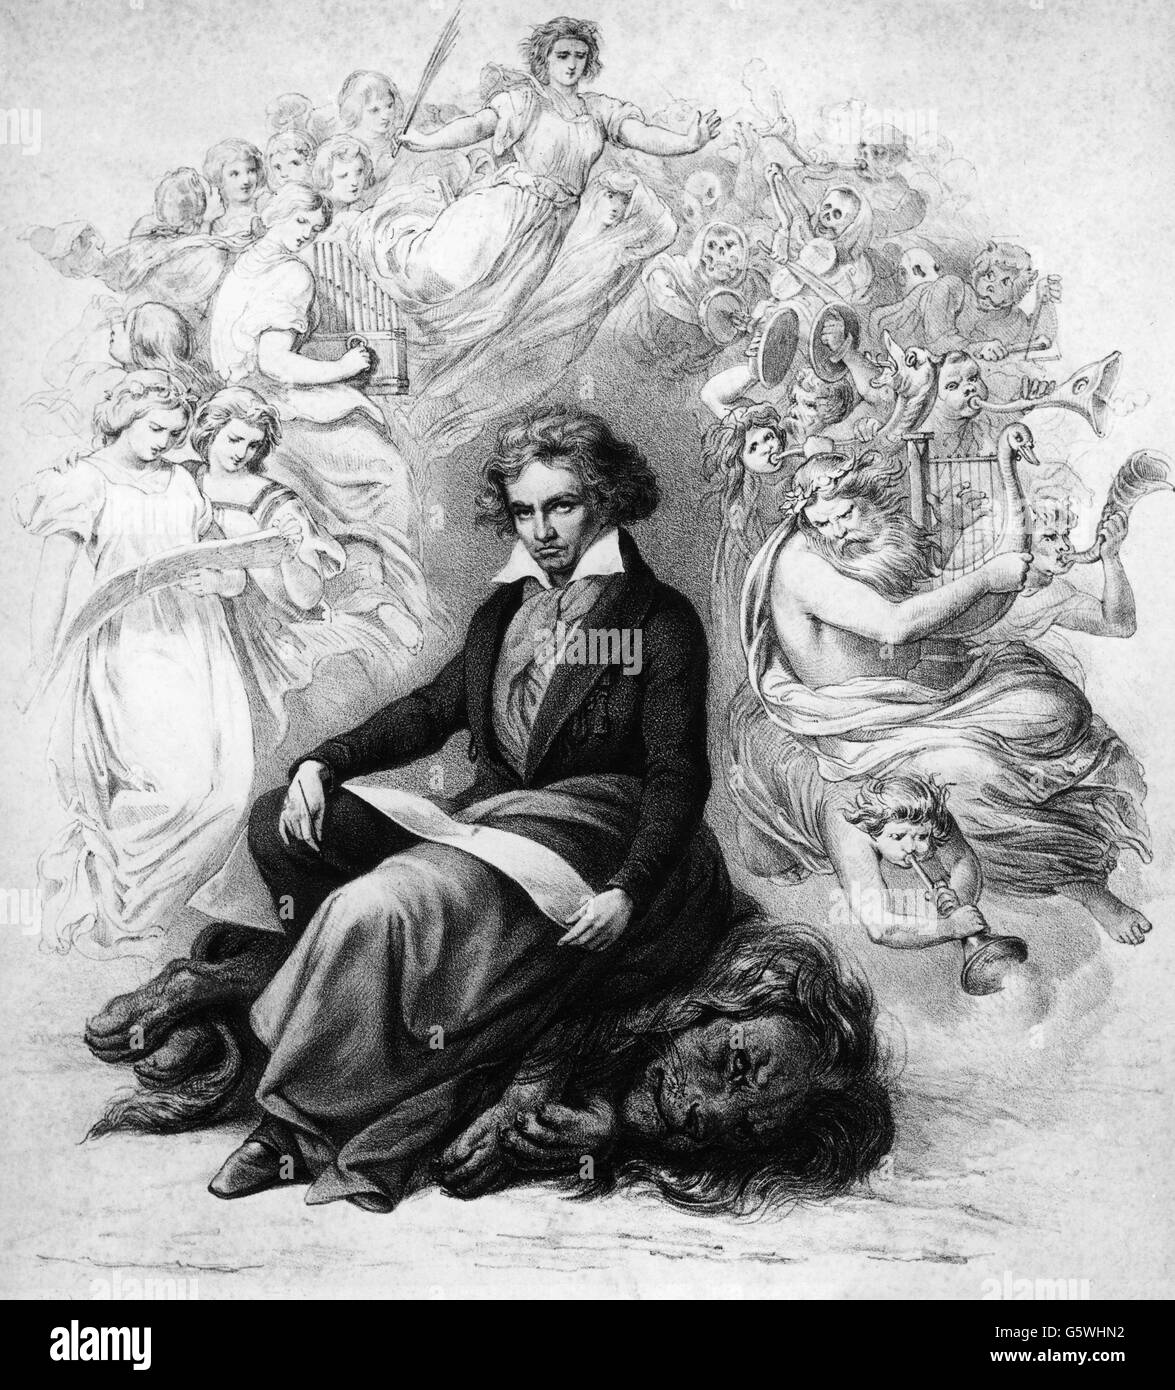 Beethoven, Ludwig van, 17.12. 1770 - 26.3.1827, German composer, full length, allegory, lithograph, lithographic - Stock Image